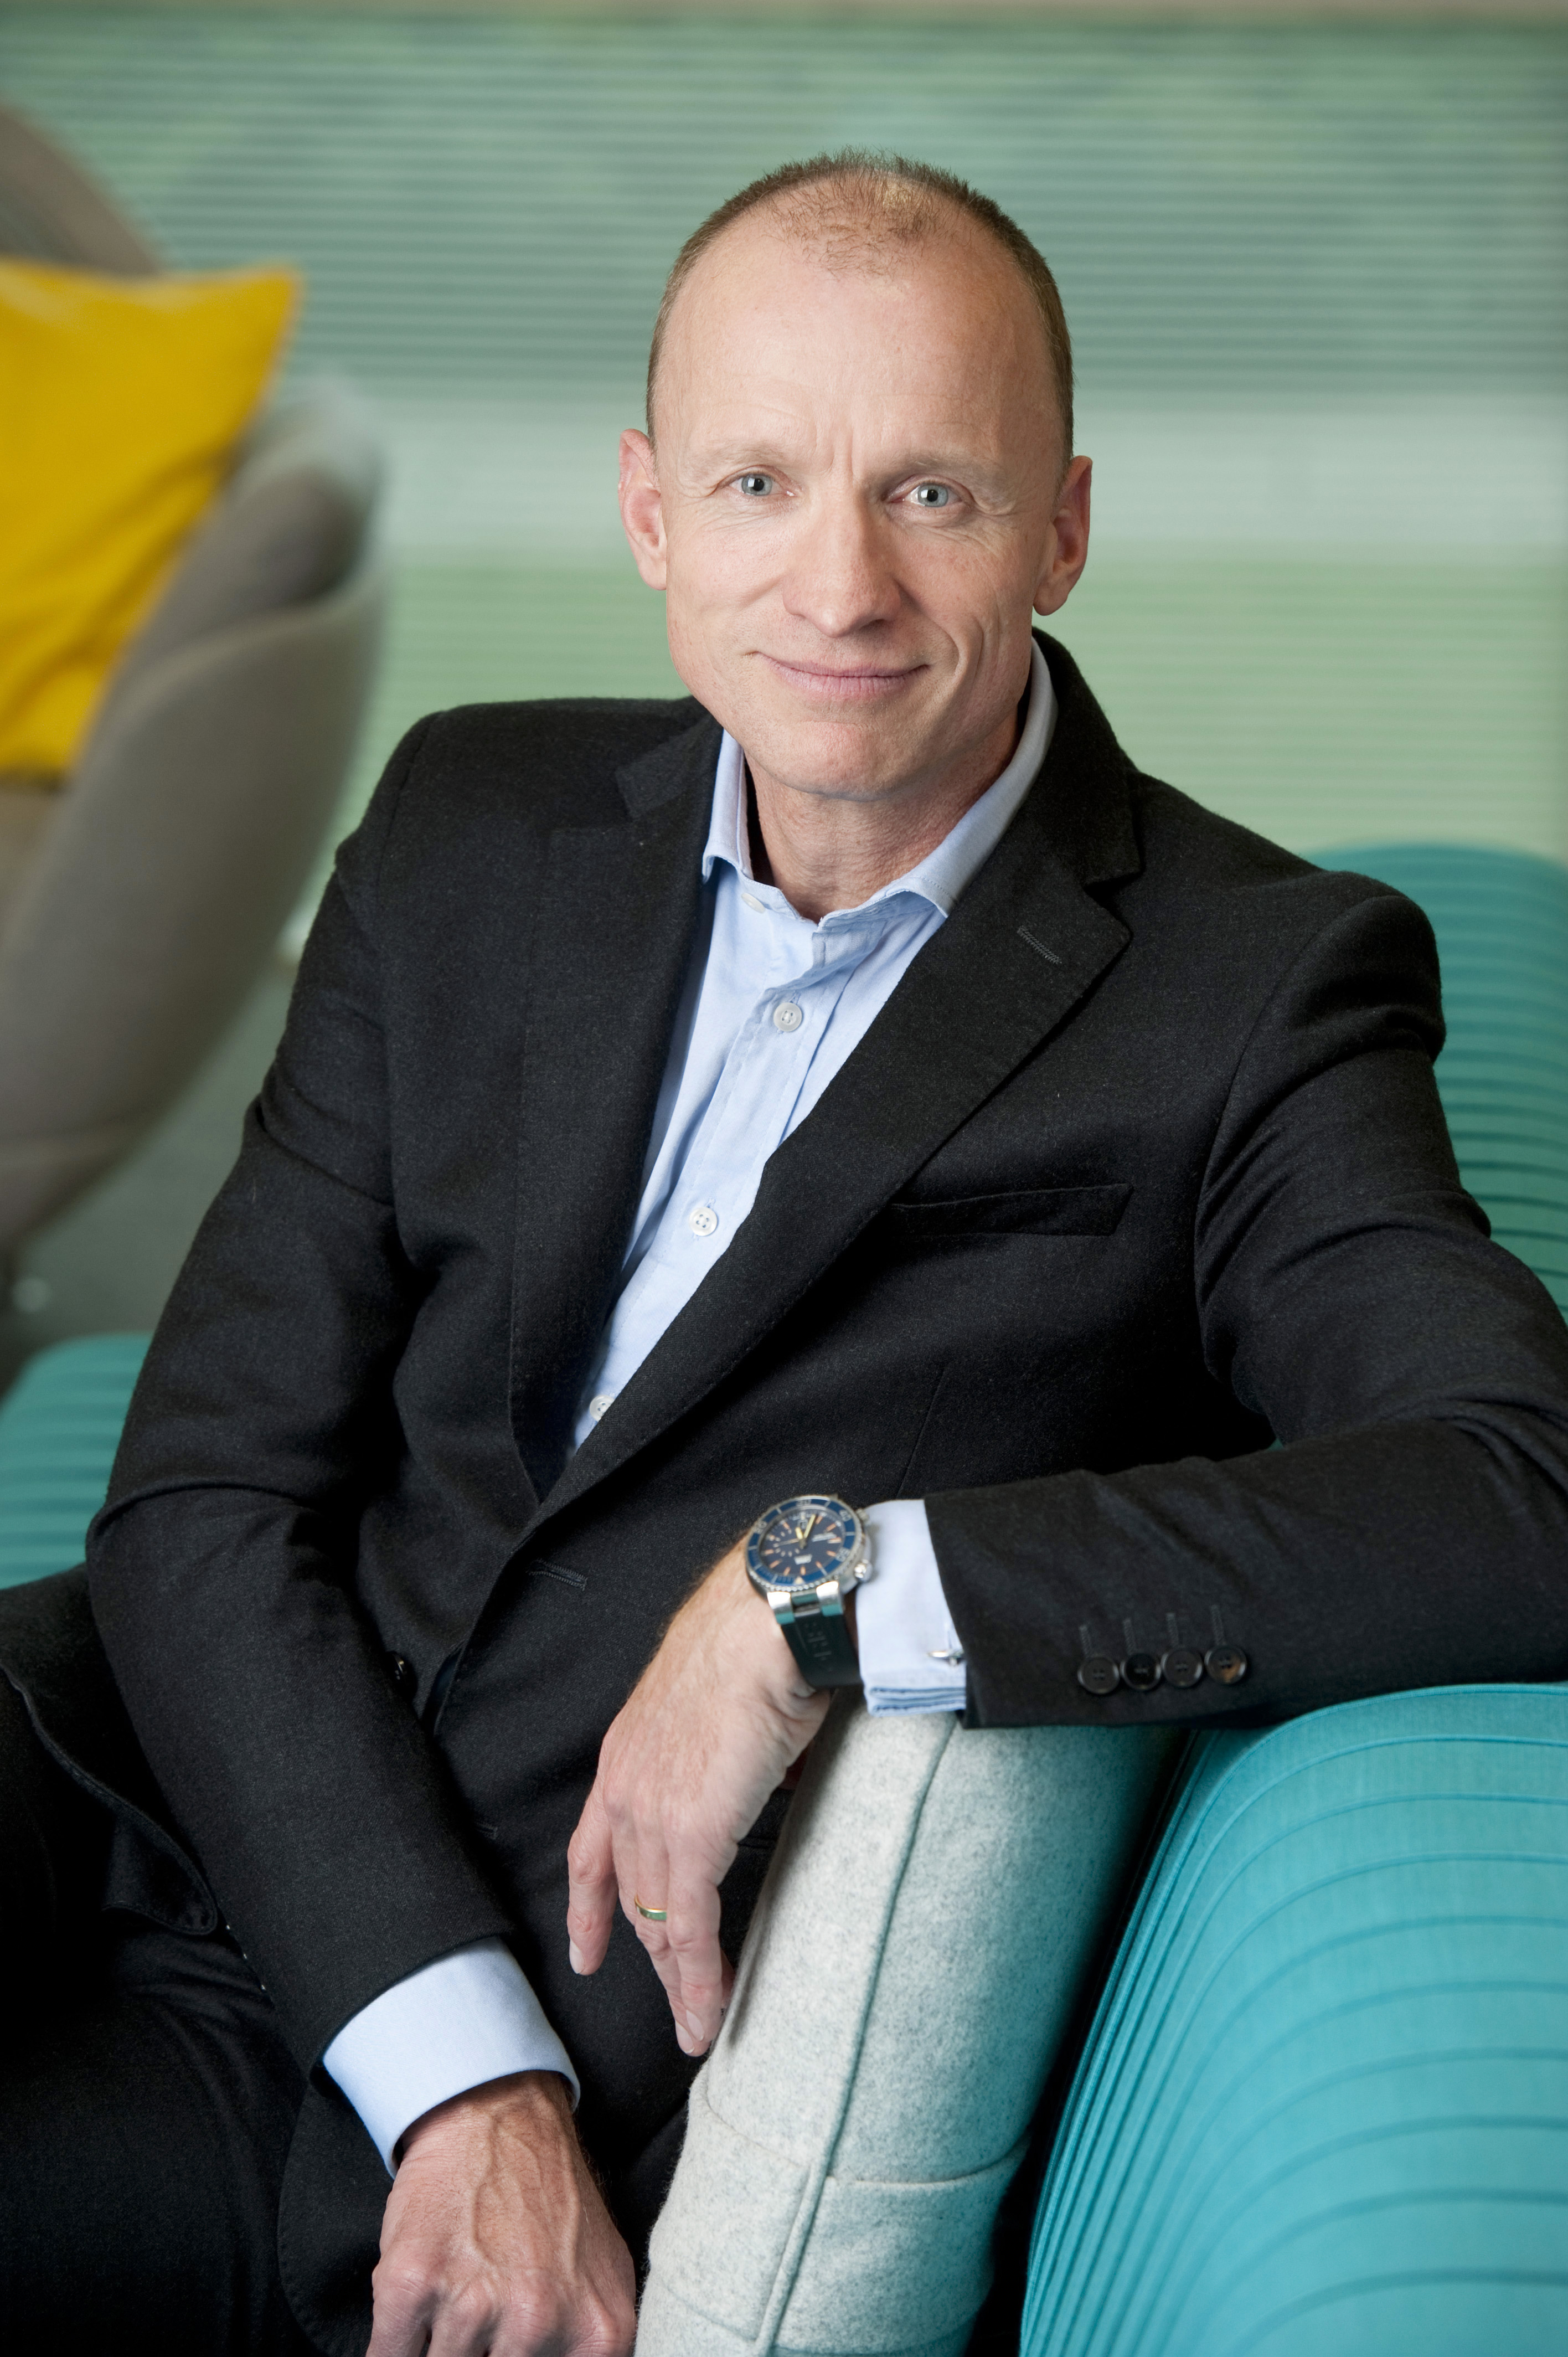 Olaf Swantee, the former CEO of EE